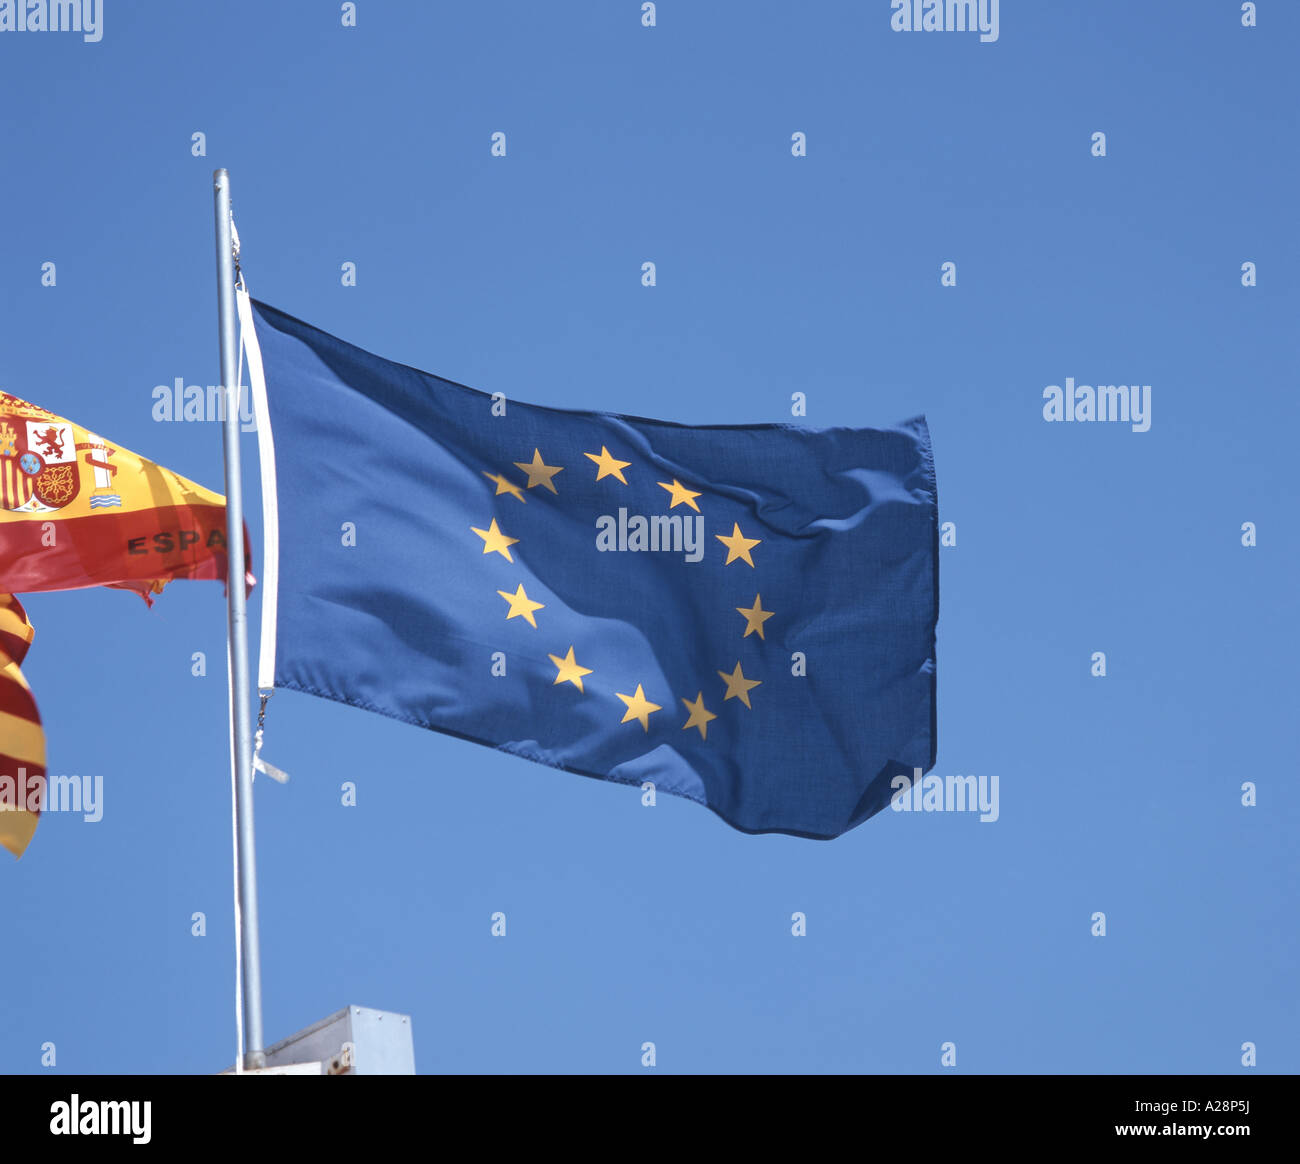 European Union flag, Canary Wharf, London, England, United Kingdom - Stock Image